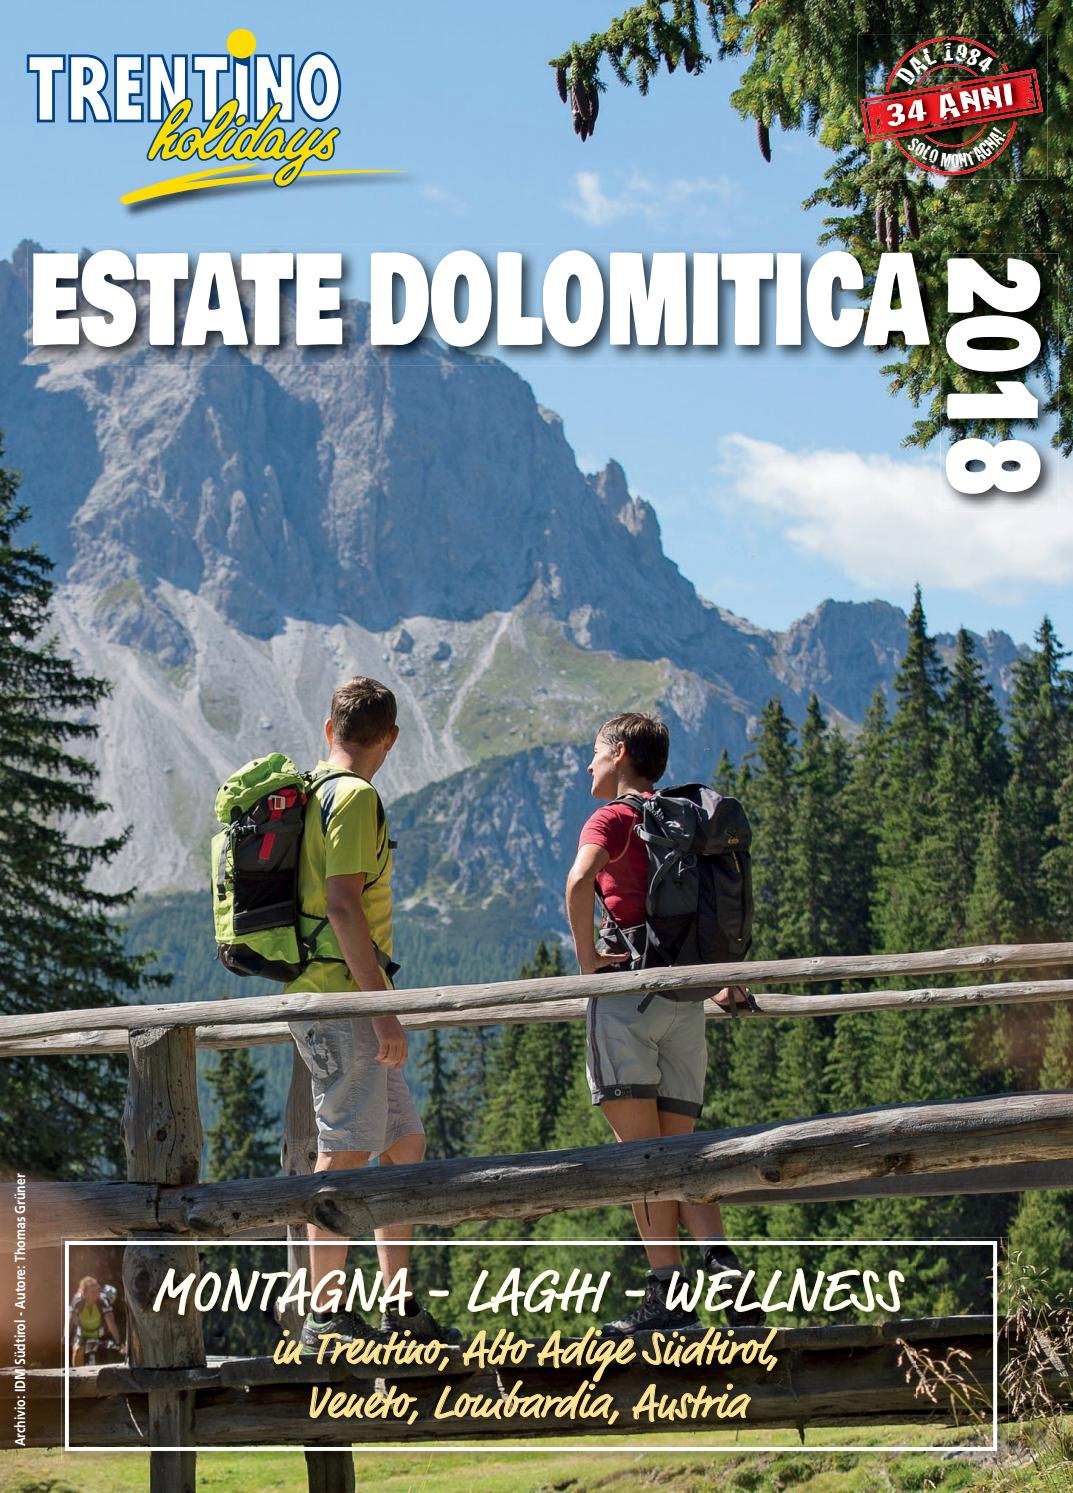 Hotel Caminetto Folgarida Booking Trentino Holidays Catalogo Estate 2018 By Enrico Luchi Issuu